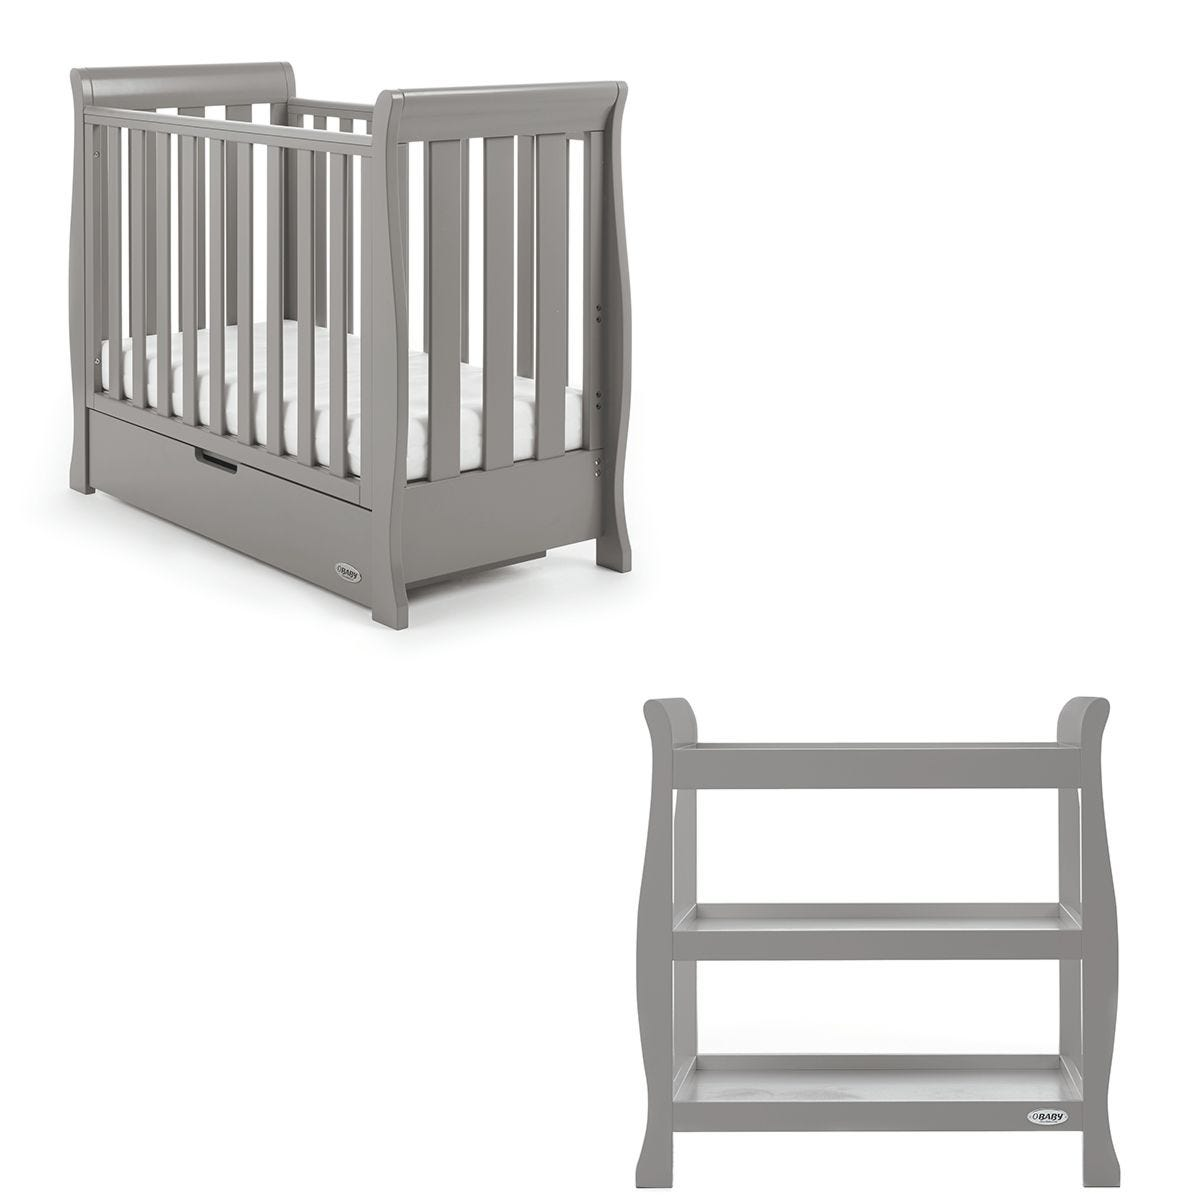 Obaby Stamford Space Saver Sleigh 2 Piece Room Set - Taupe Grey